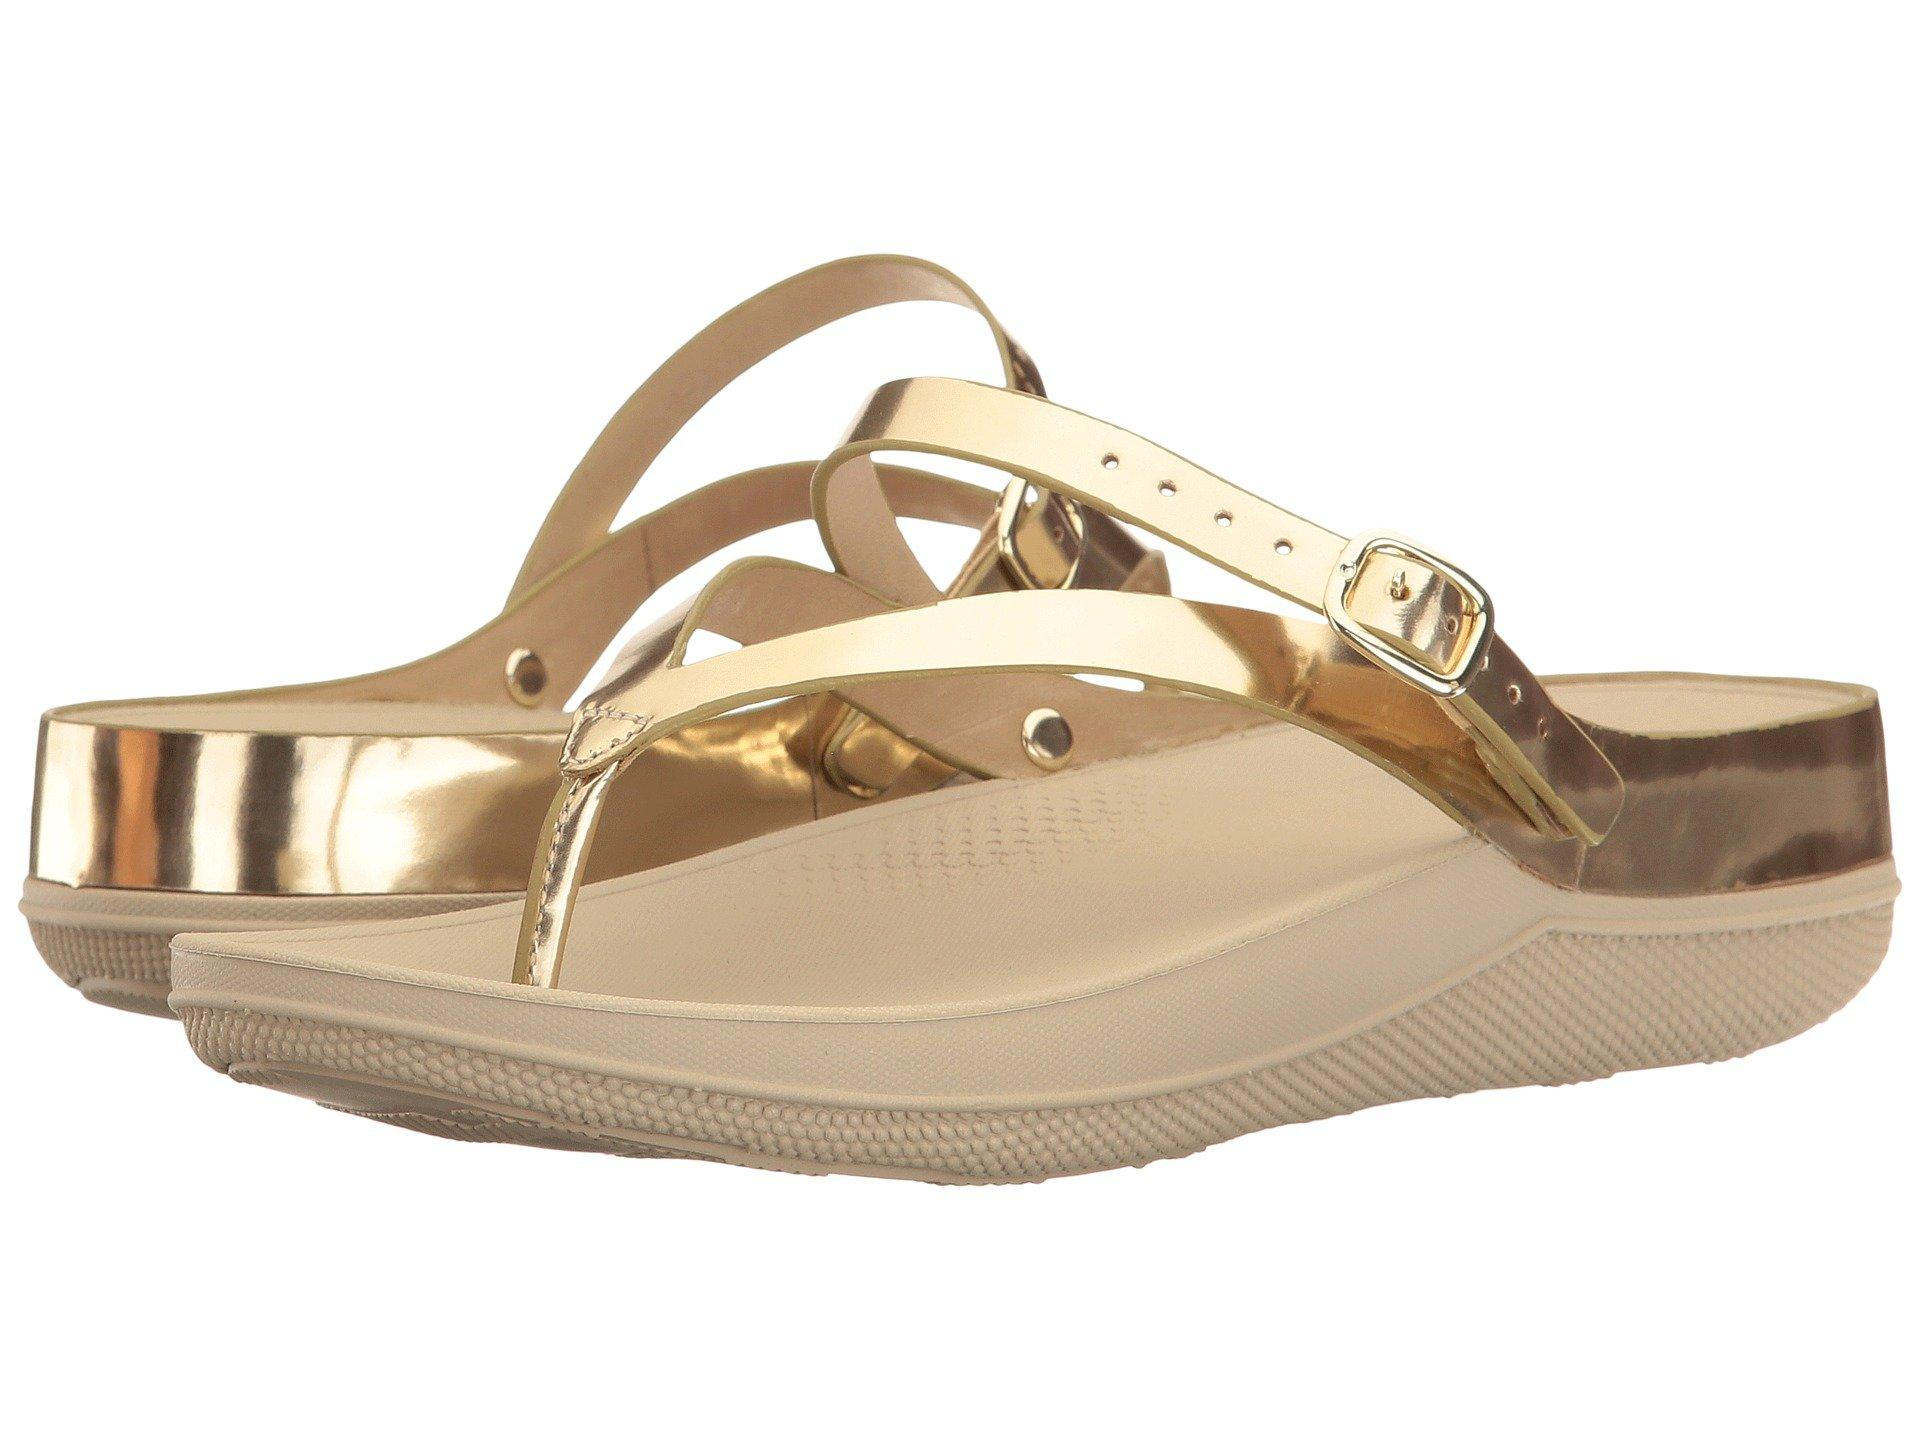 cb7310c5b7f78 Lyst - Fitflop Flip Leather Sandals in Metallic